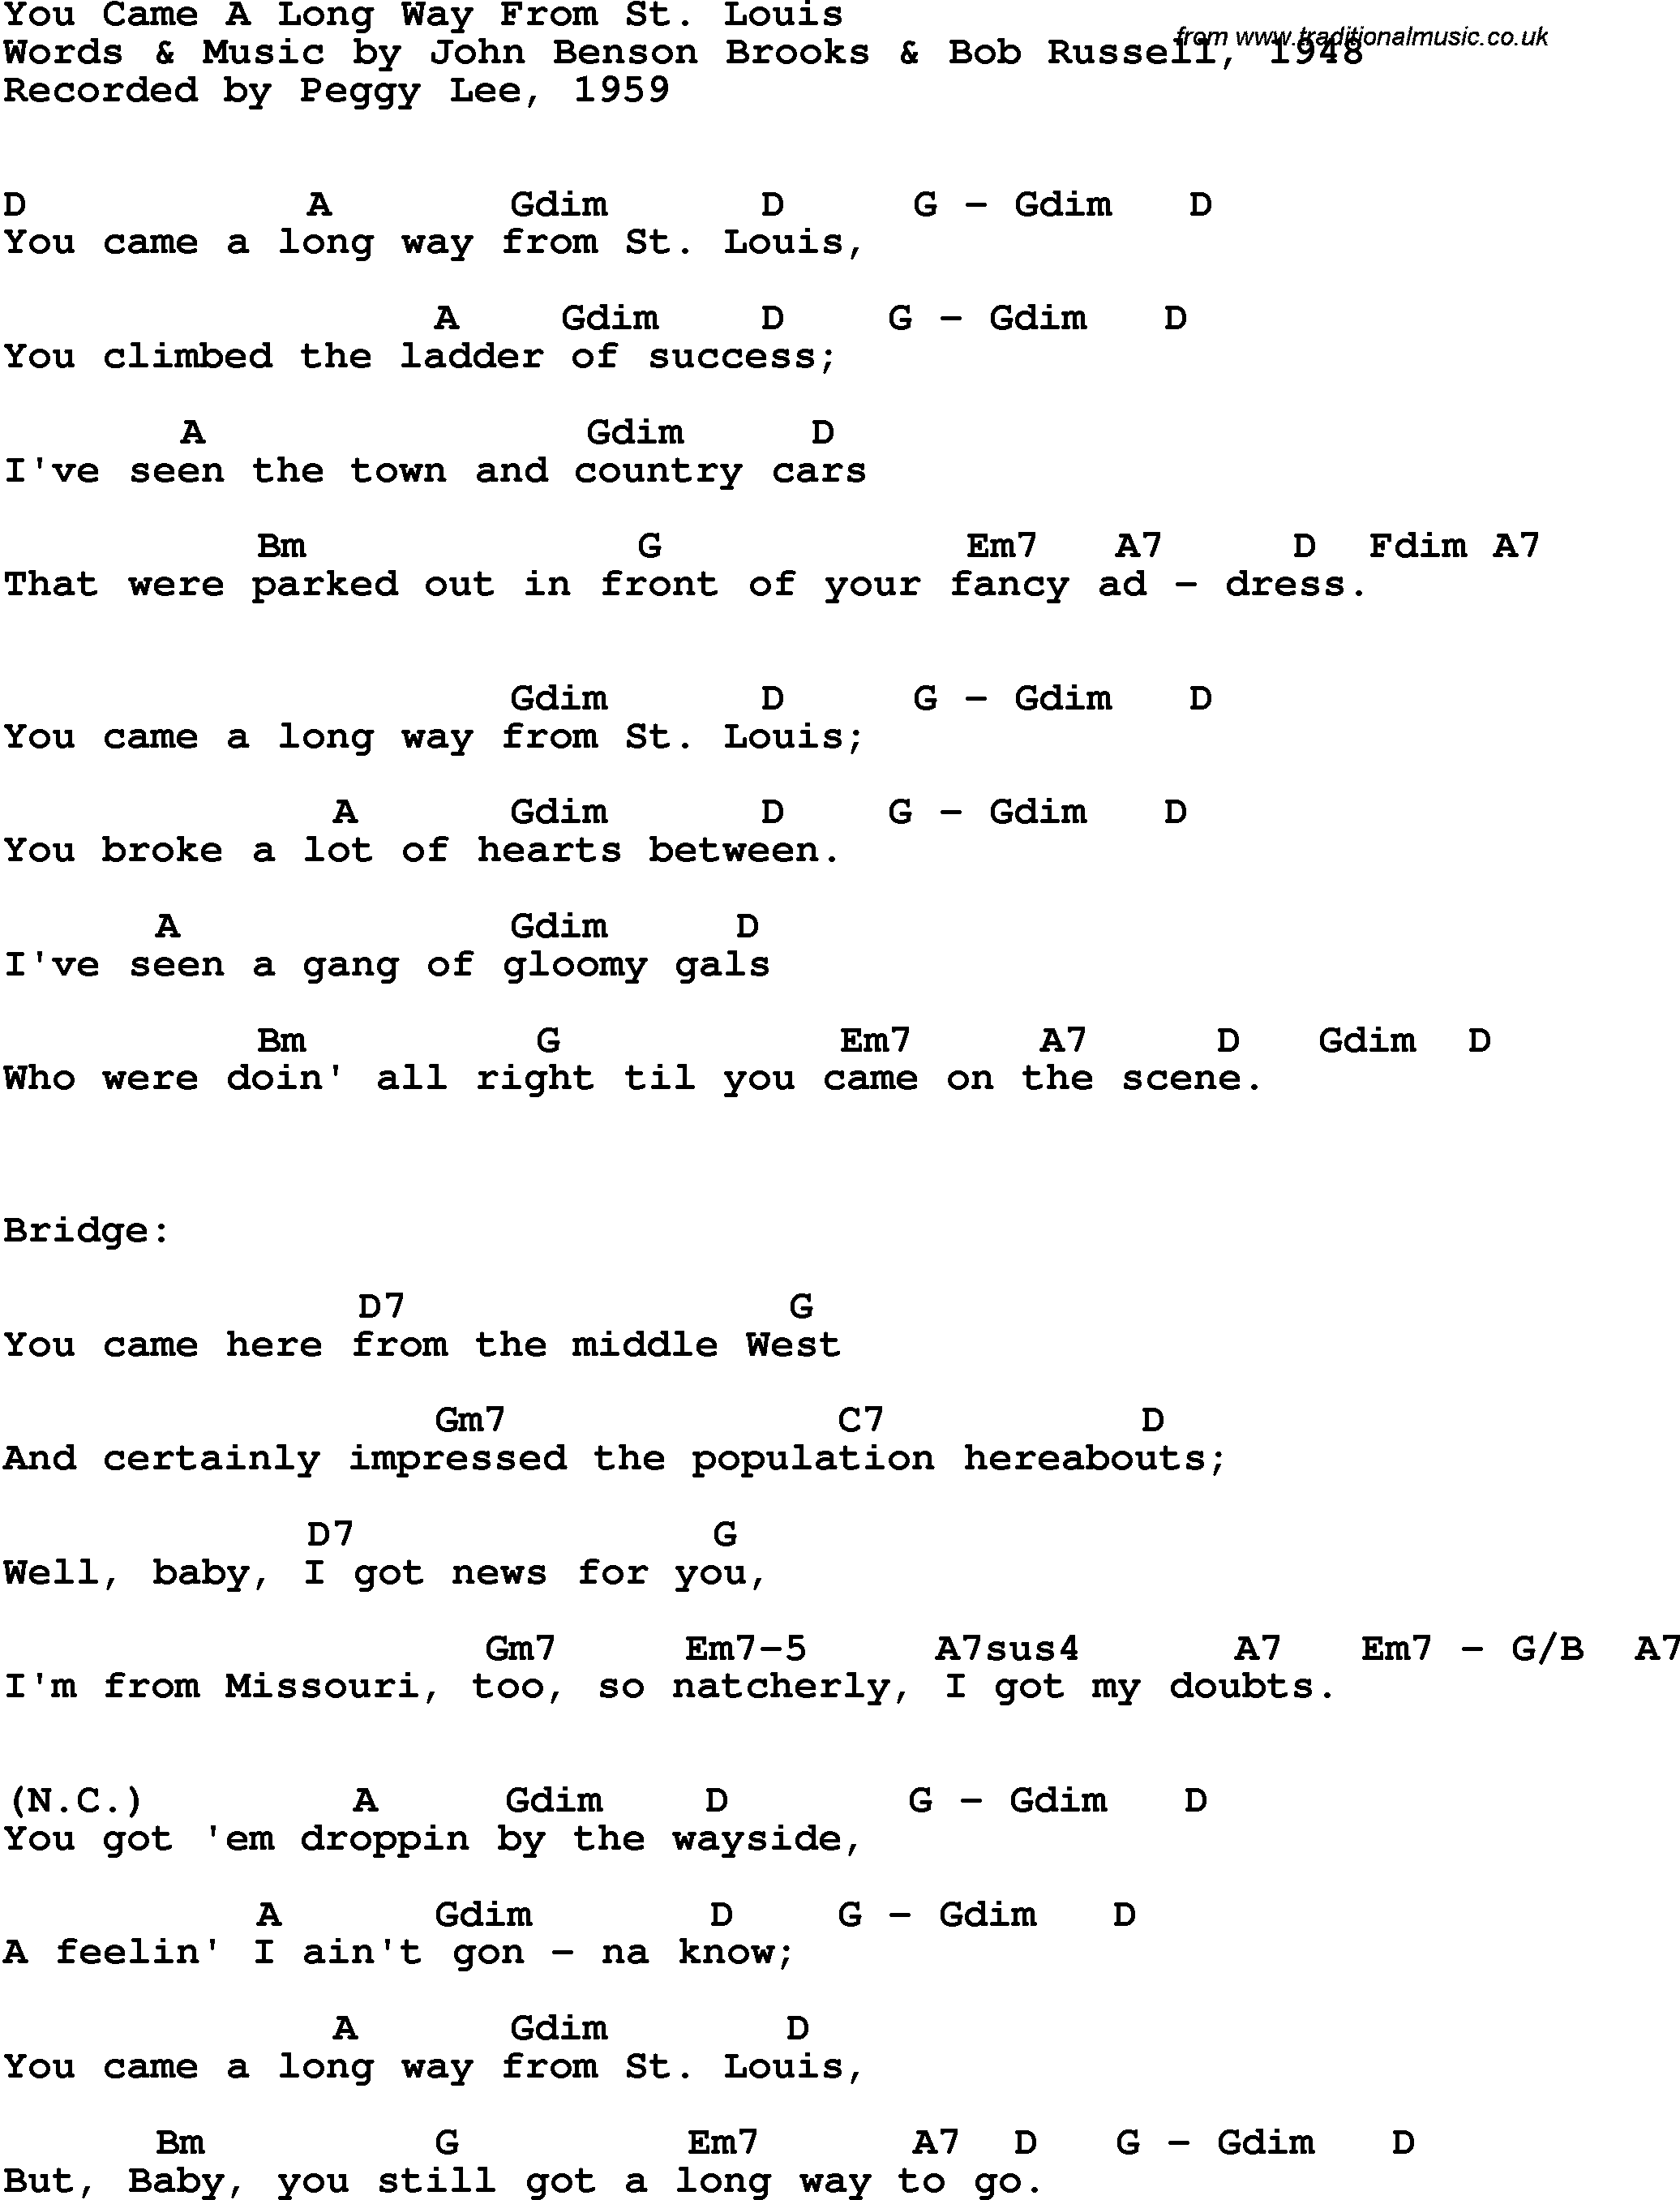 Song Lyrics With Guitar Chords For You Came A Long Way From St